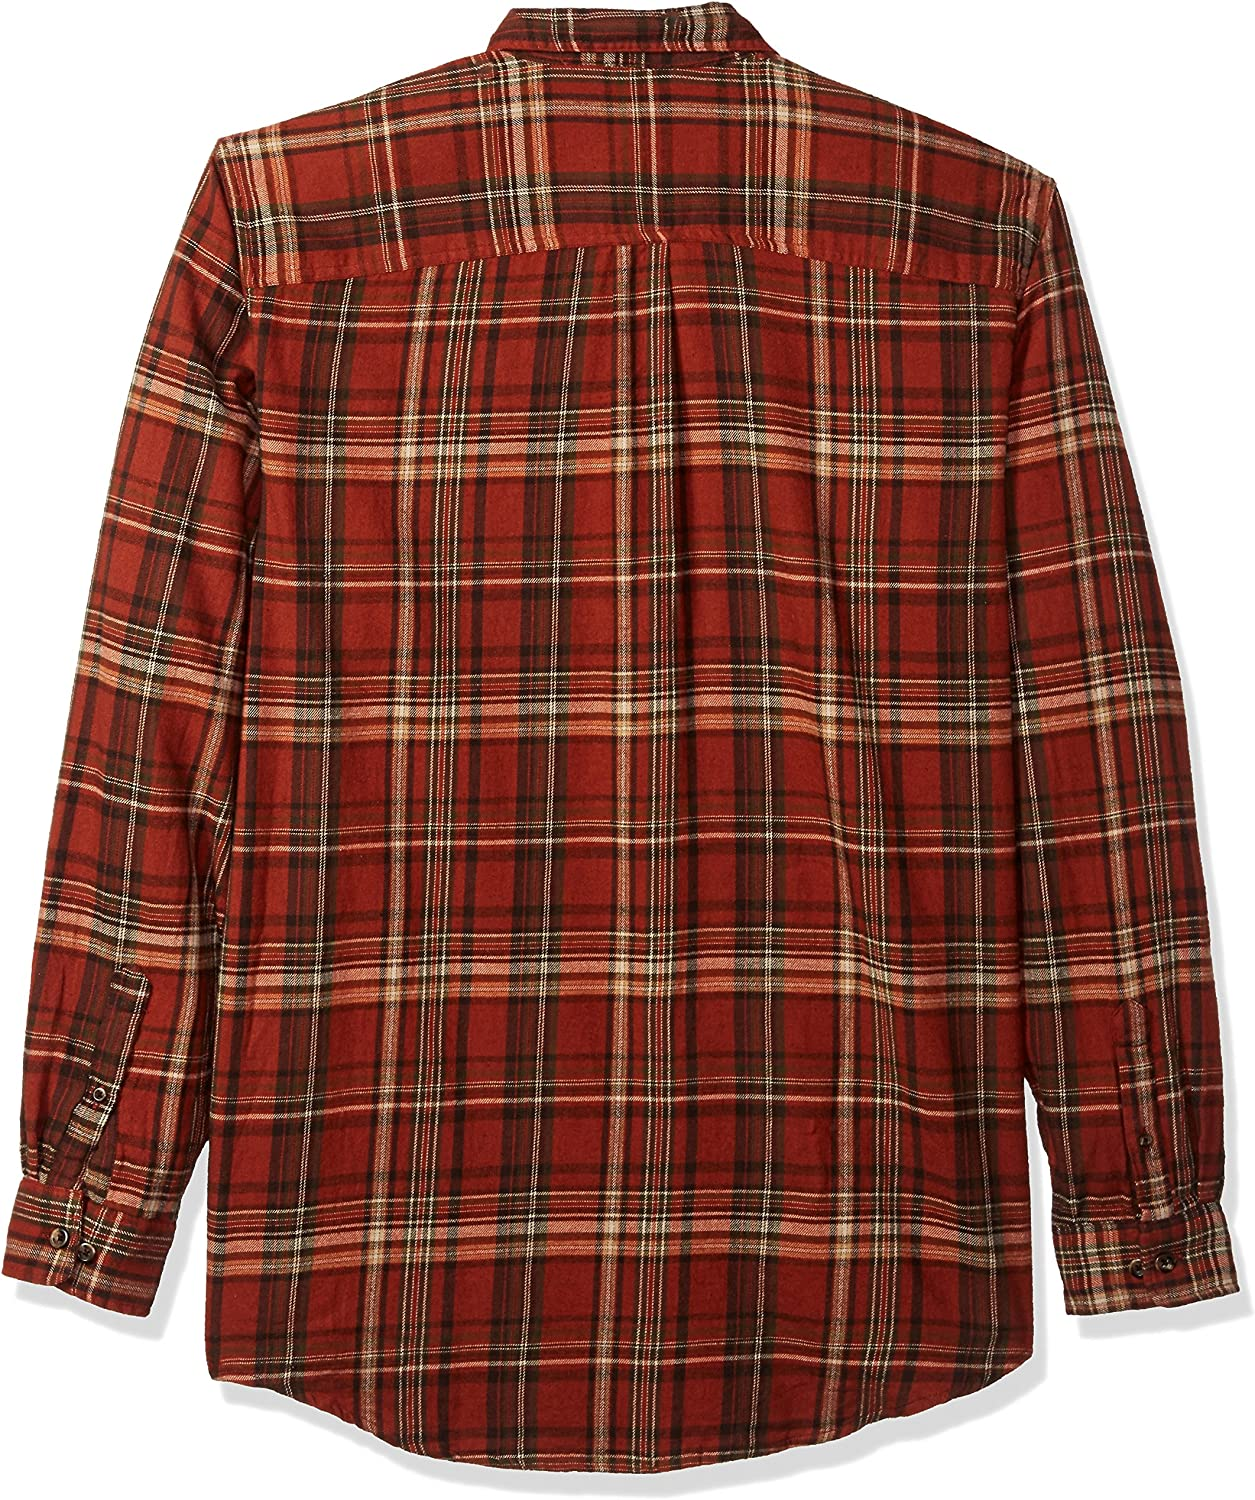 Bass /& Co Mens Big and Tall Fireside Flannels Long Sleeve Button Down Shirt G.H